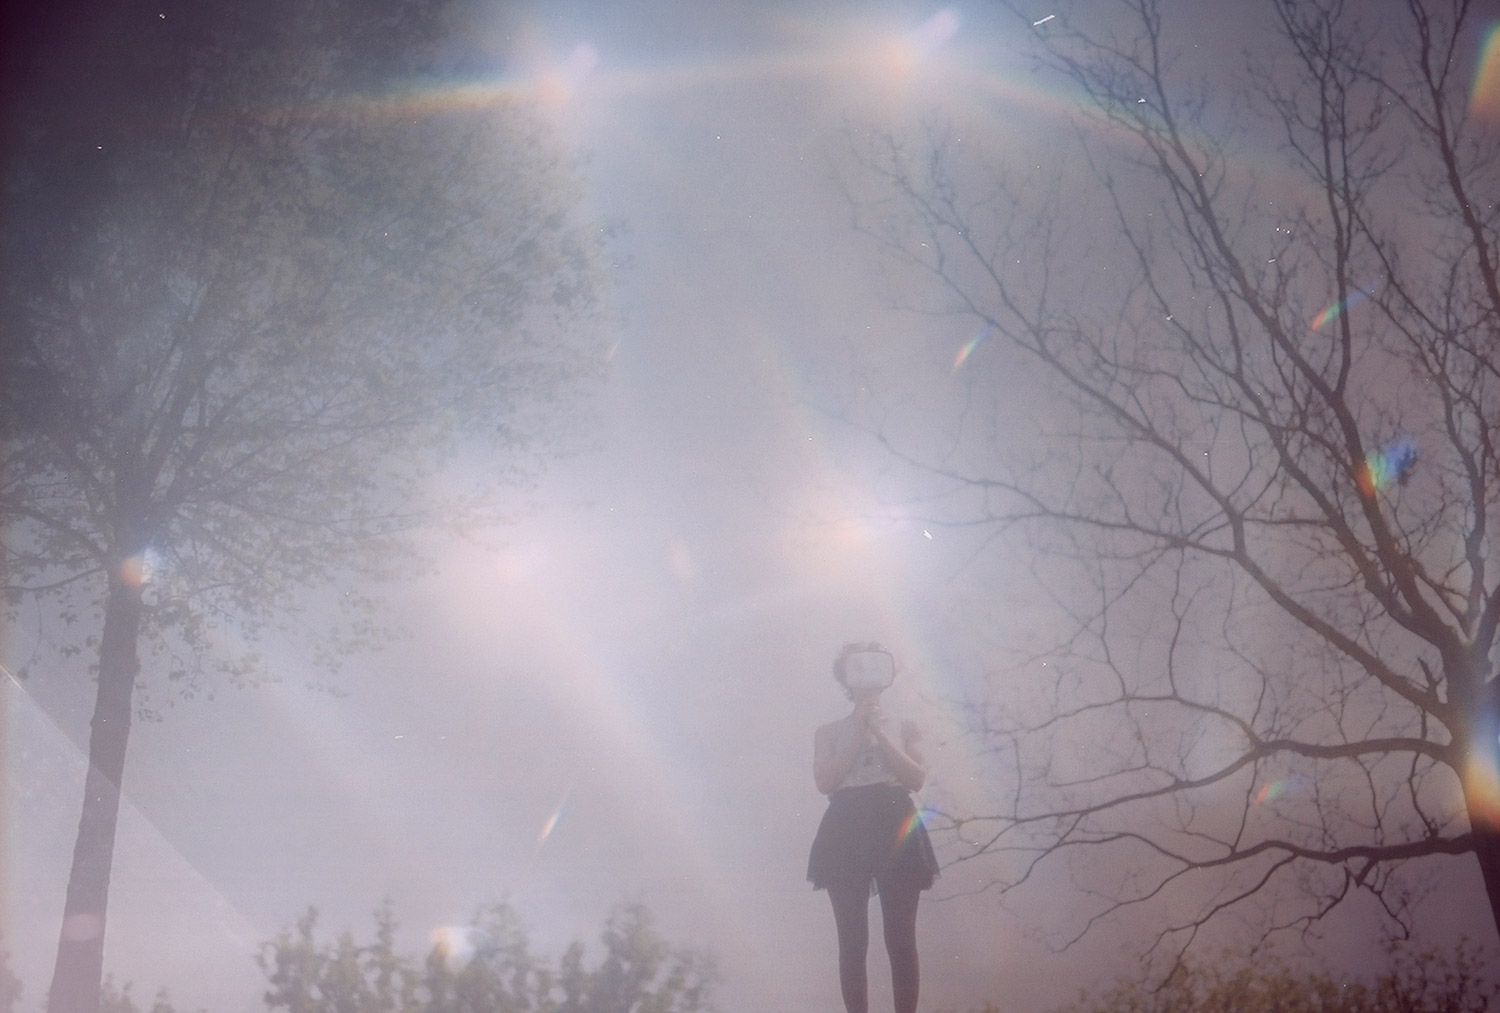 Lunakhods - figure in Toronto, Canada with glowing, hazy lights